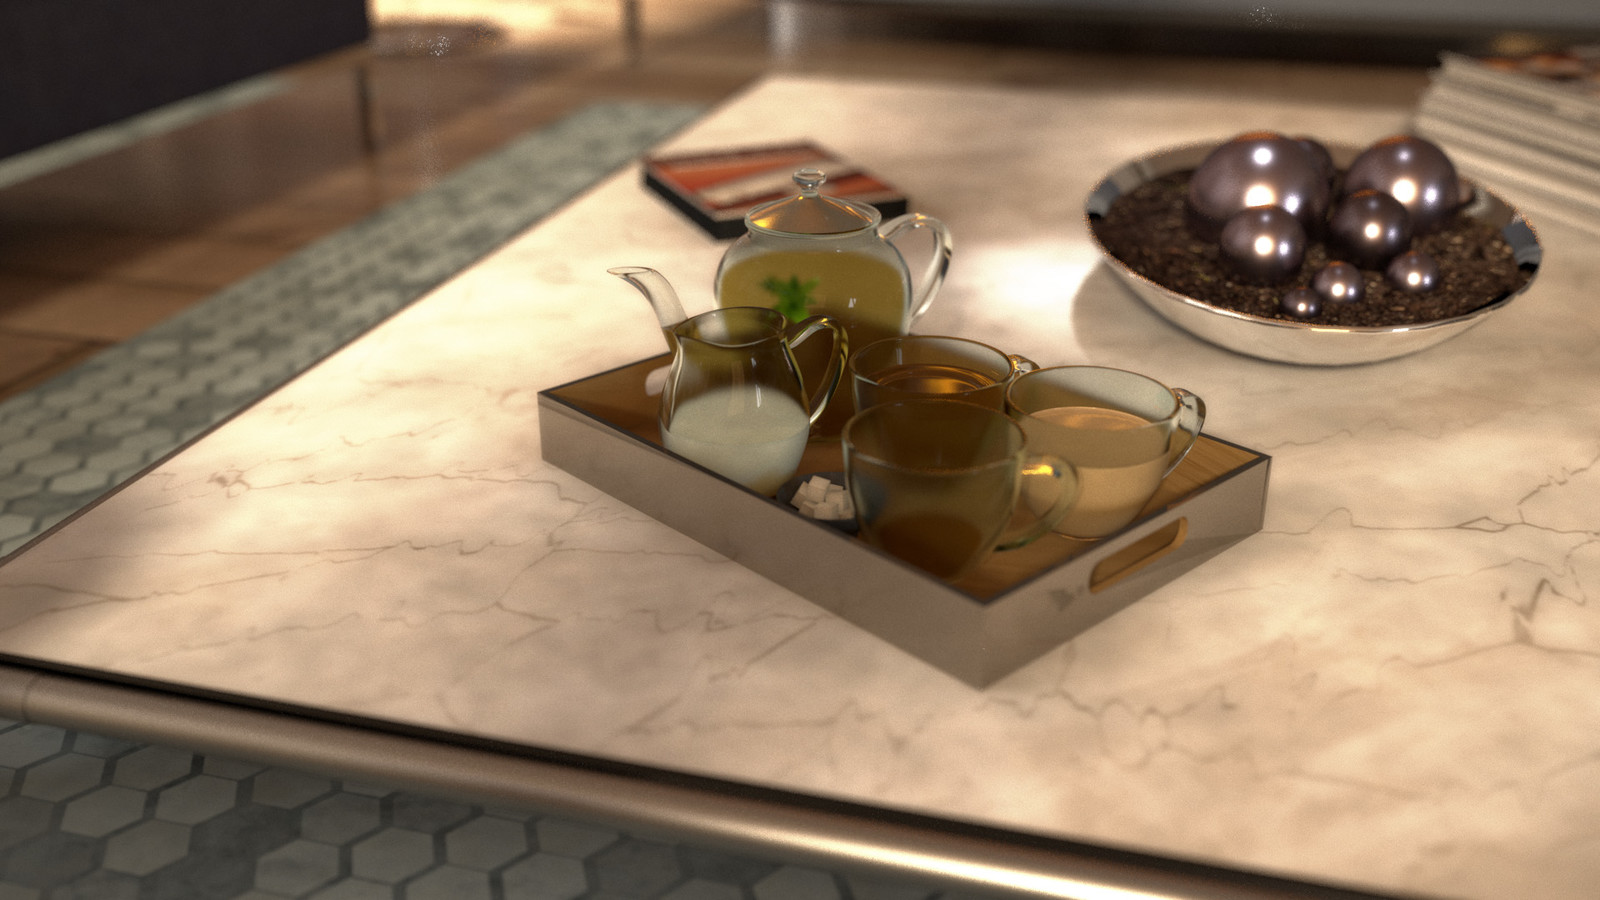 Finla render of the tea set. Moss balls were replaced; subsurface scatter was used on the milk mesh.